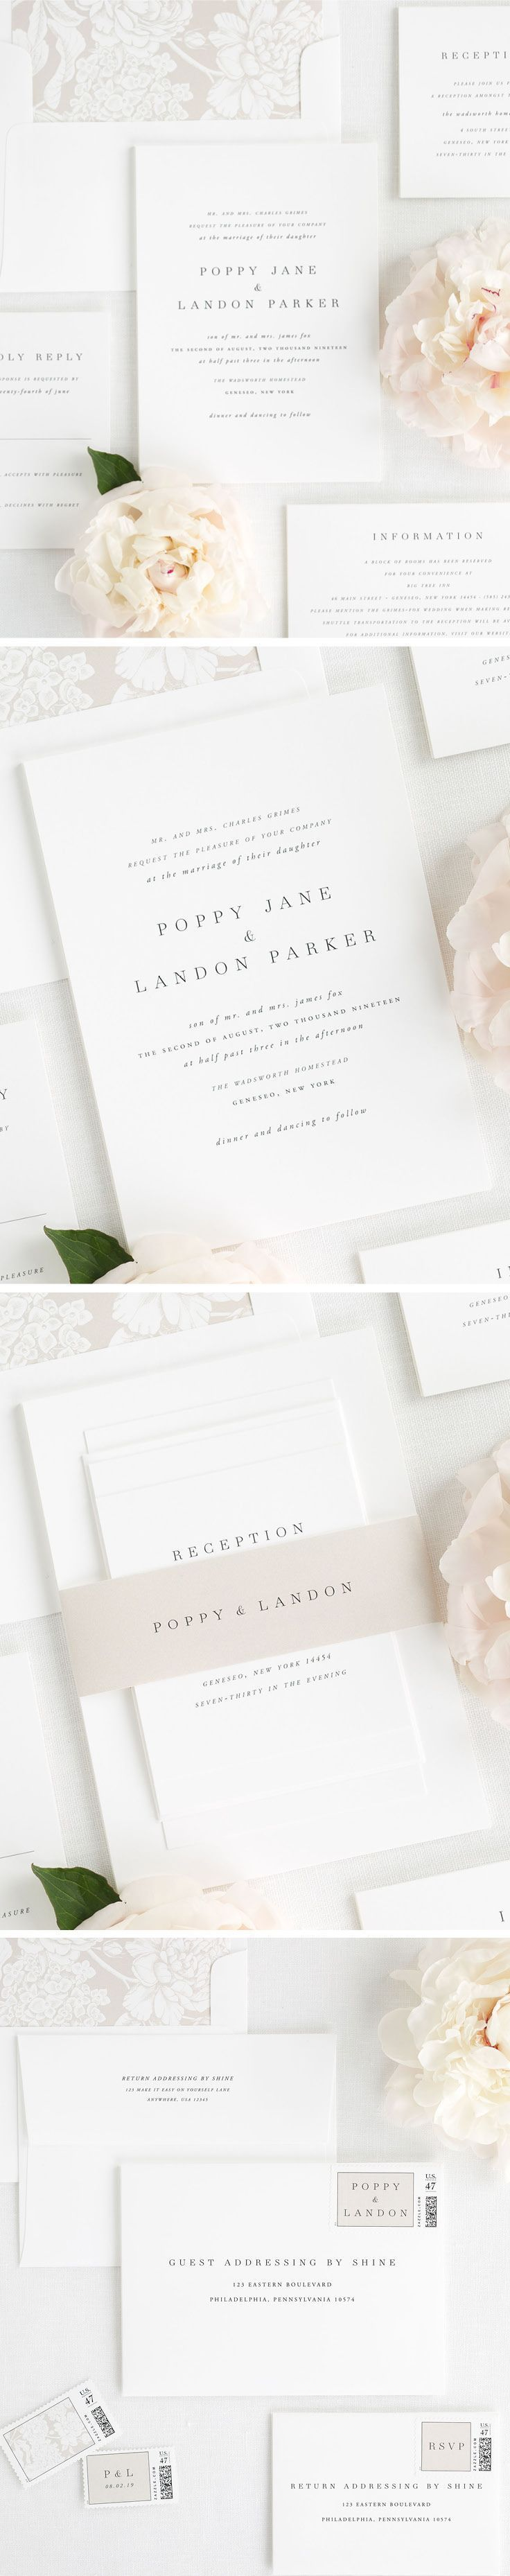 Meet Poppy, our simple and sophisticated wedding invitation design new for 2017. Poppy has a mix of classic and romantic elements which makes this design so gorgeous. Italics and small caps play a big role in creating such a simple design that is perfect